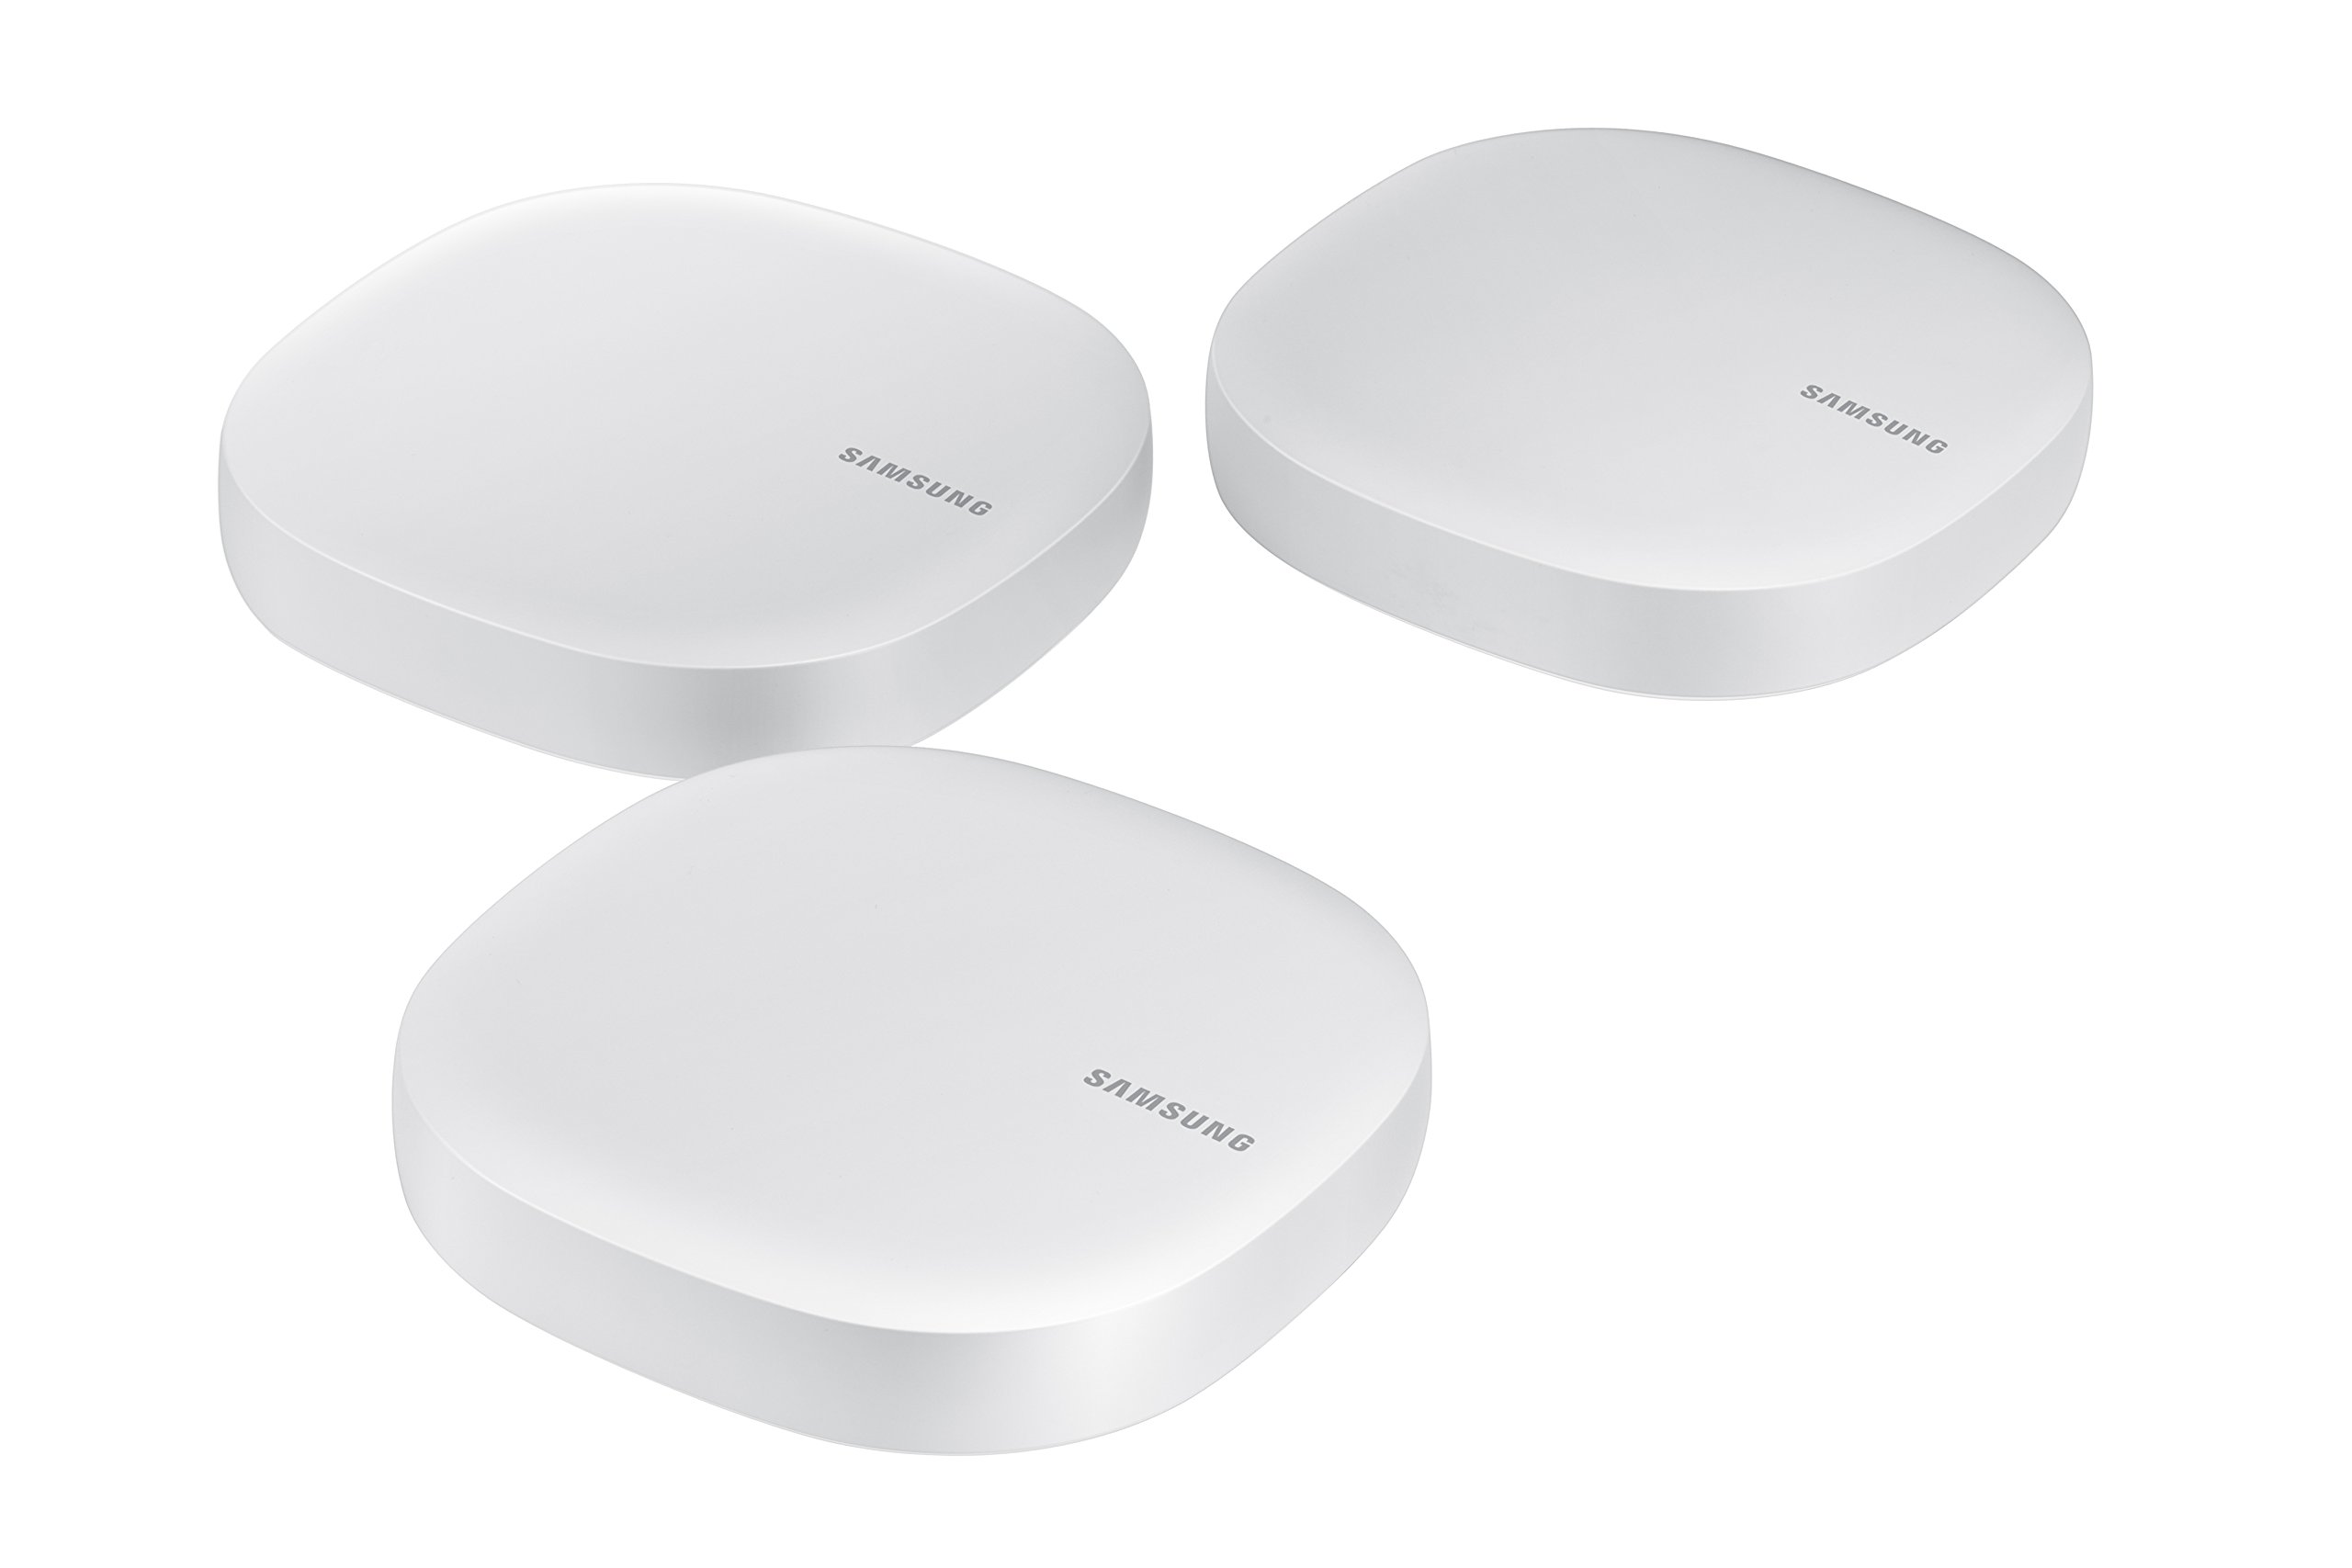 Samsung Connect Home AC1300 Smart Wi-Fi System (3-Pack), Works as a SmartThings Hub by Samsung